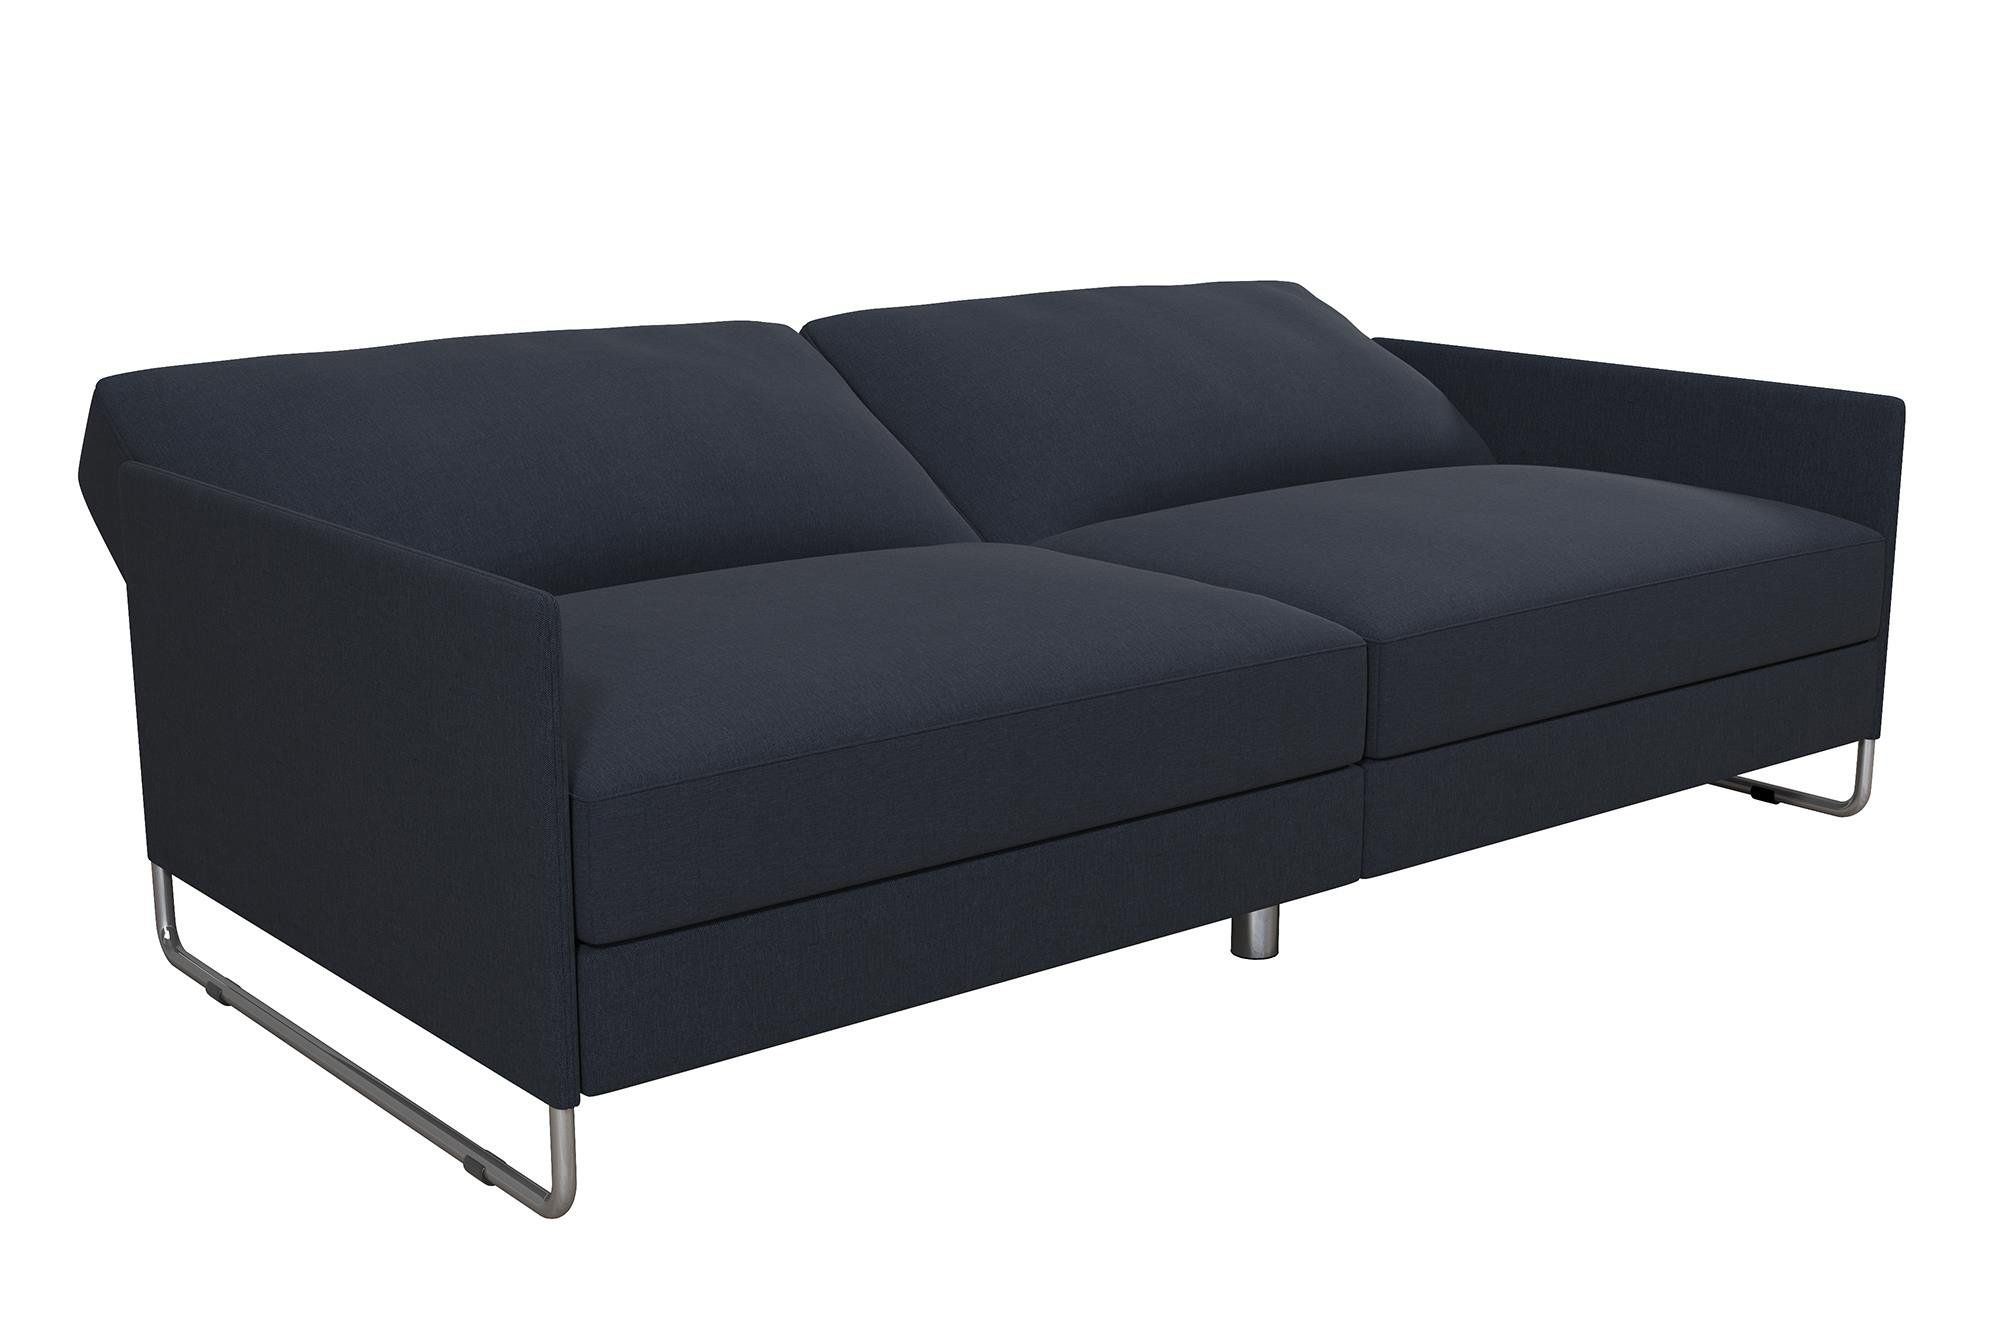 Dhp Pembroke Convertible Futon Sofa Bed Navy Want Additional